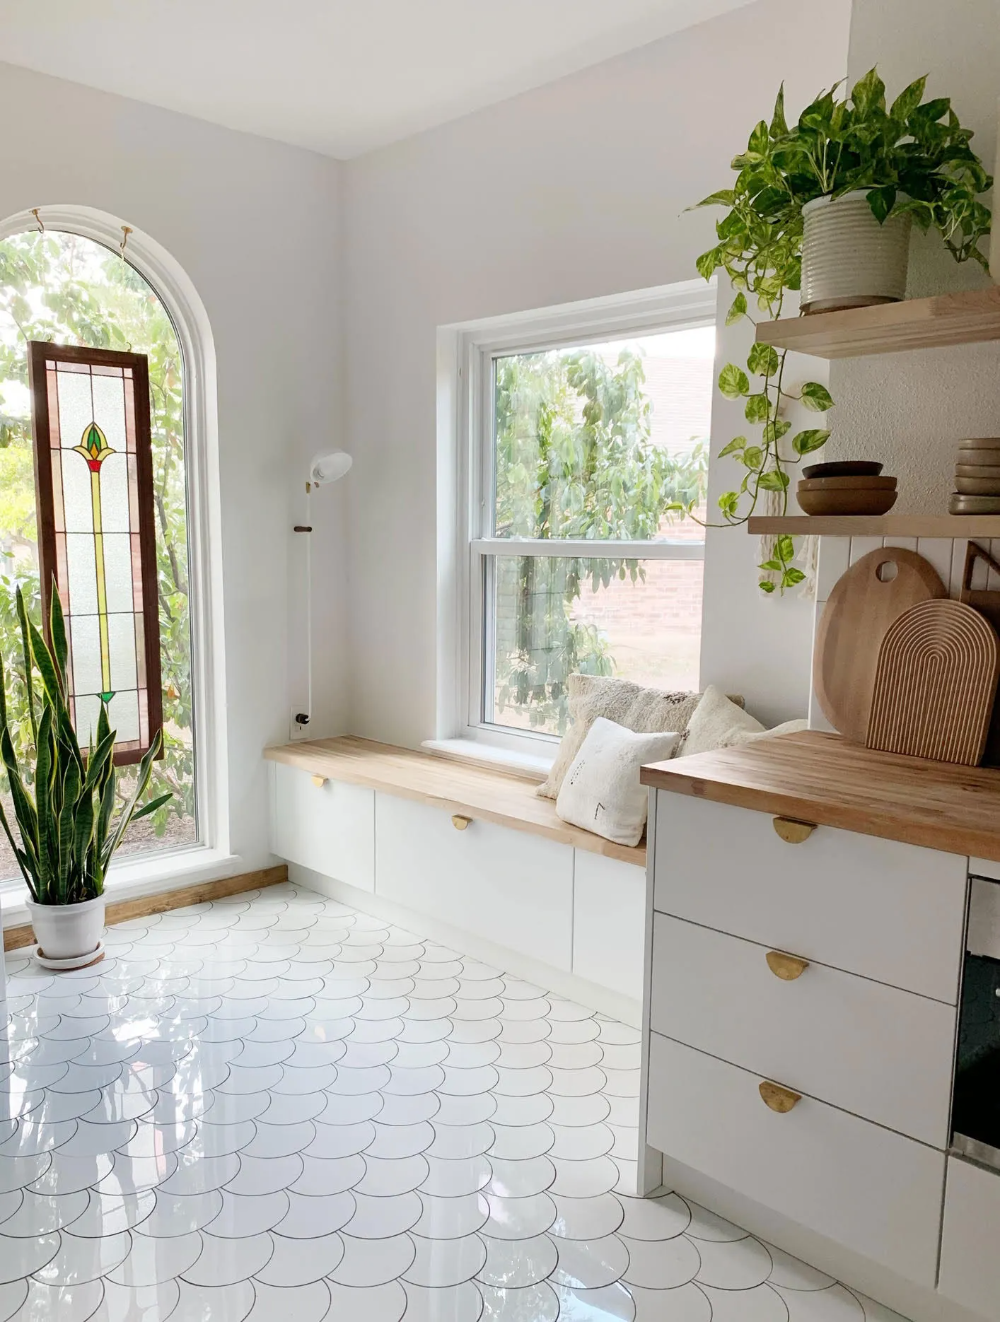 Scalloped Tile and Heirloom Stained Glass Make This Kitchen Remodel Look Expensive